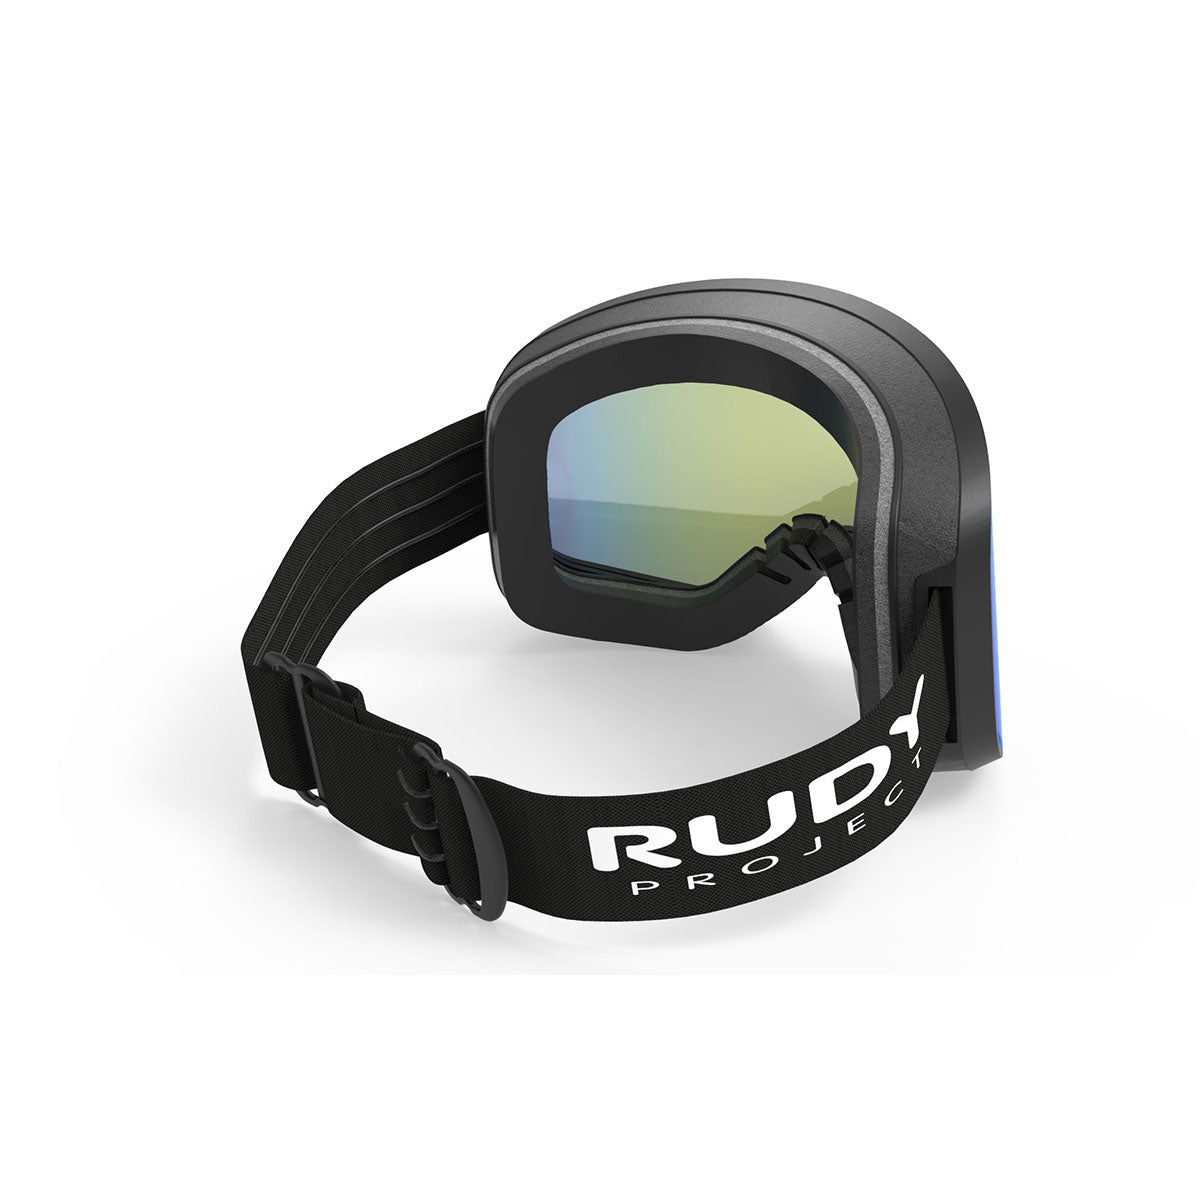 Rudy Project - Skermo - frame color: Black Matte - lens color: Multilaser Lime - Light Transmission: 11 Percent - photo angle: Top Back Angle Variant Hover Image